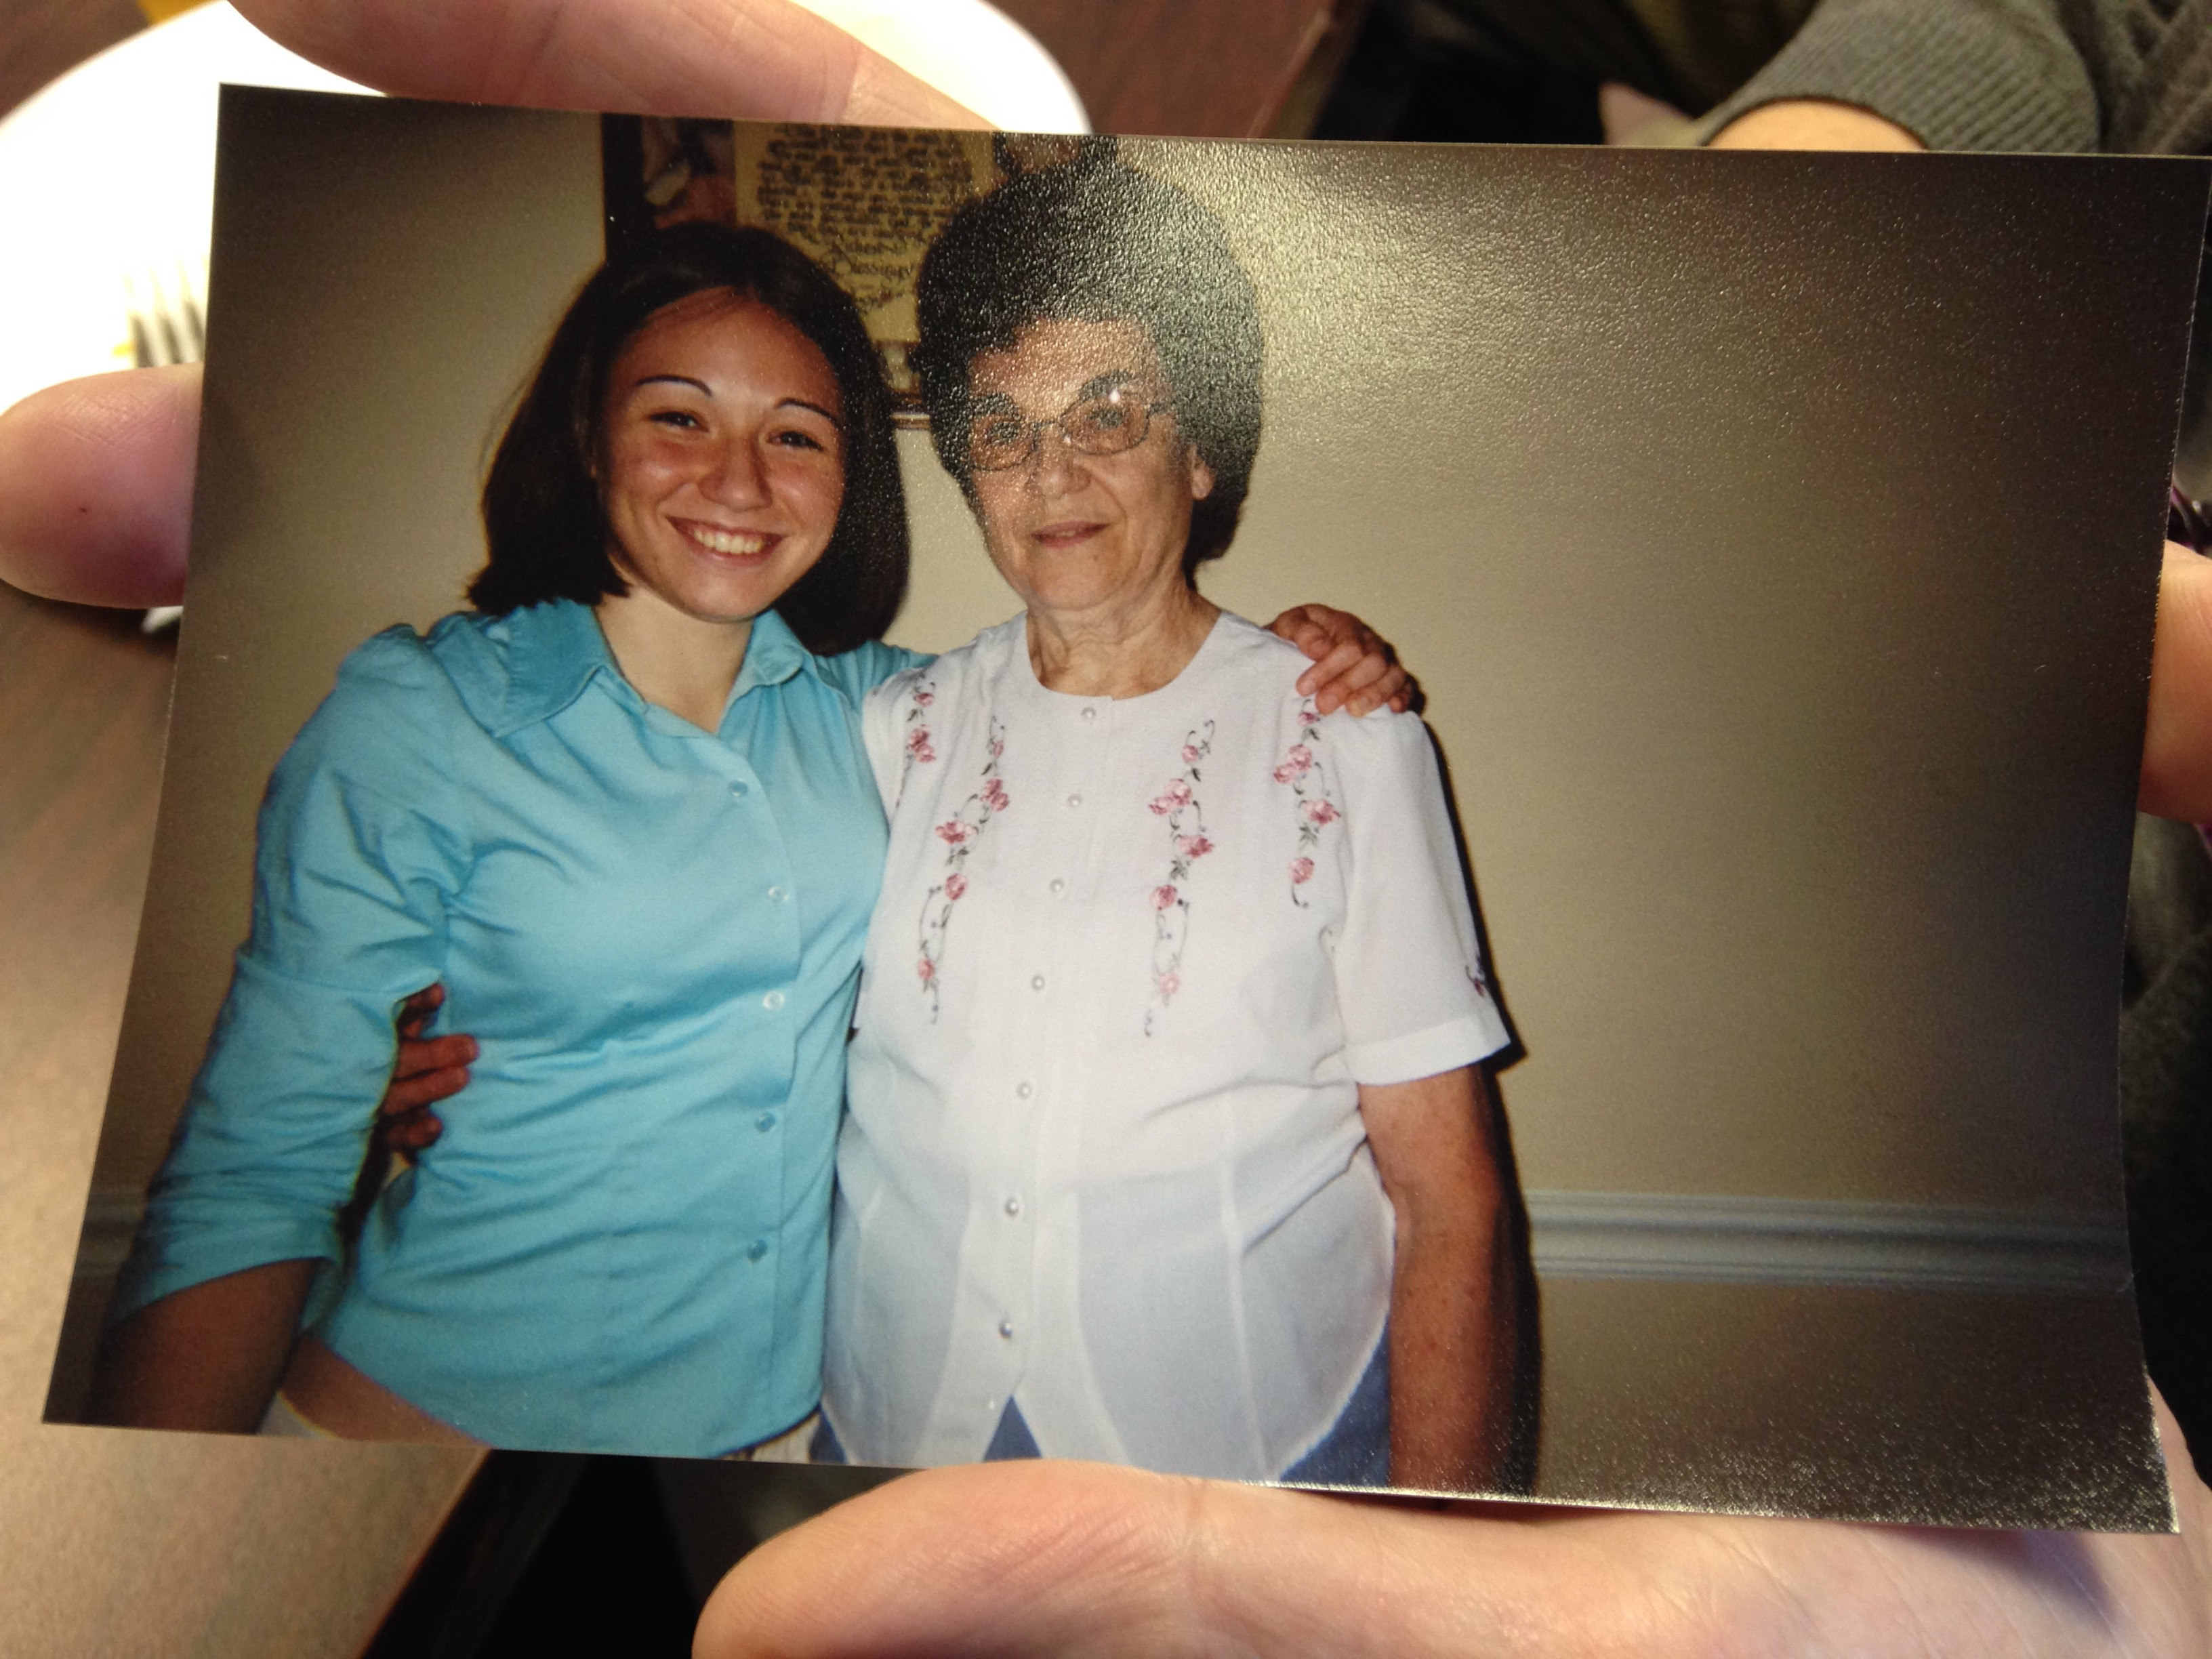 Picture shared of Keturah with Grandmother